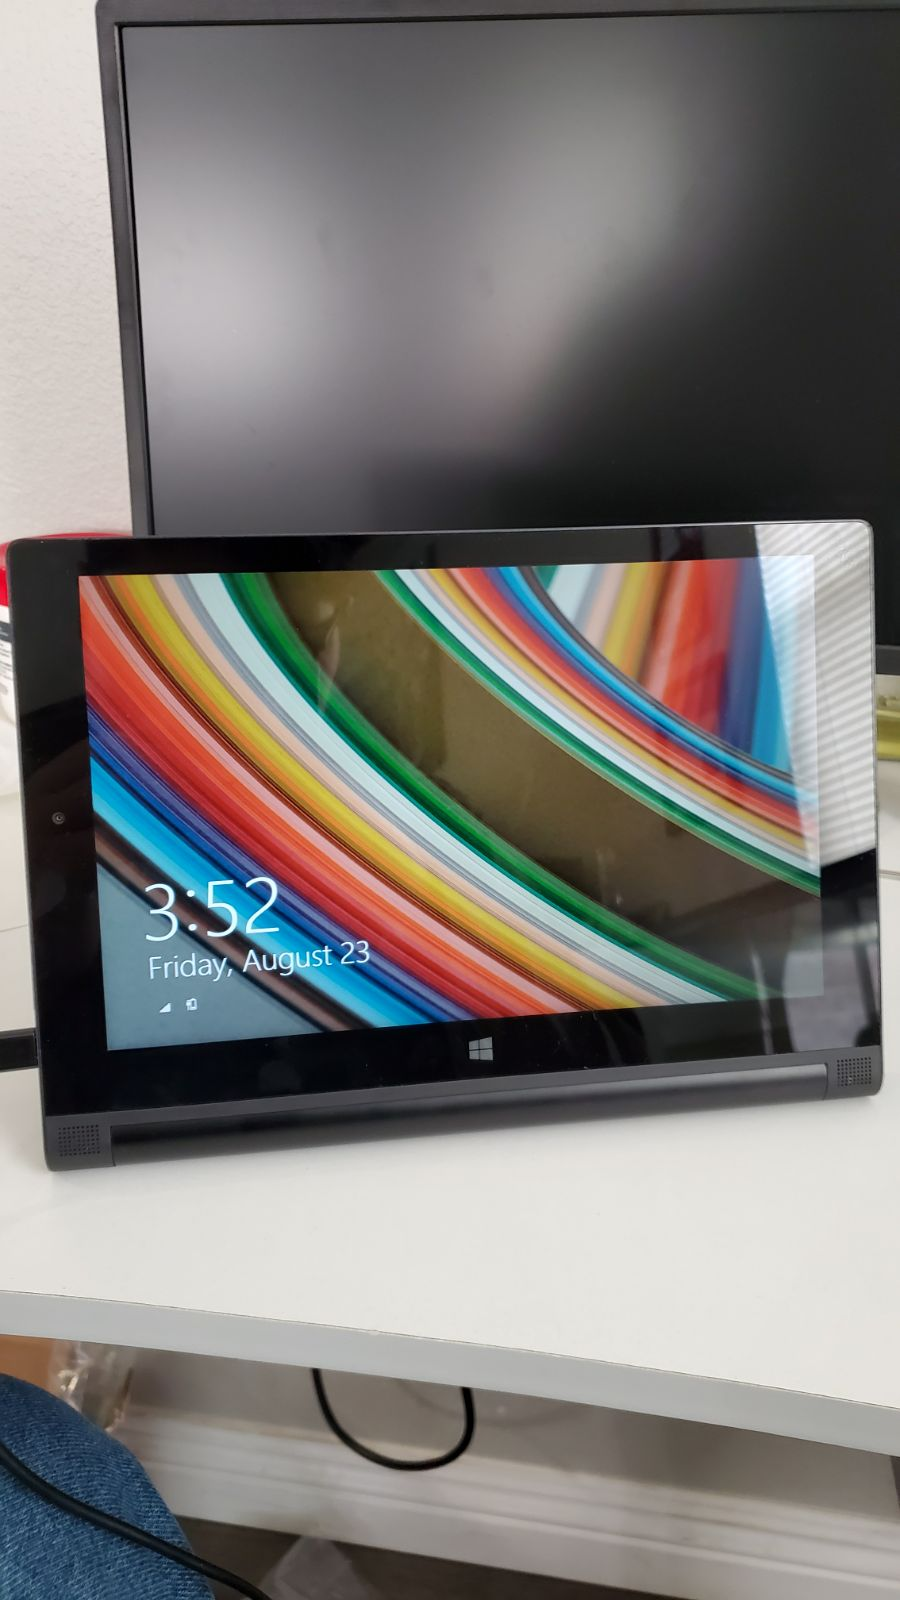 Lenovo Tablet Computer (Send Me Offers)